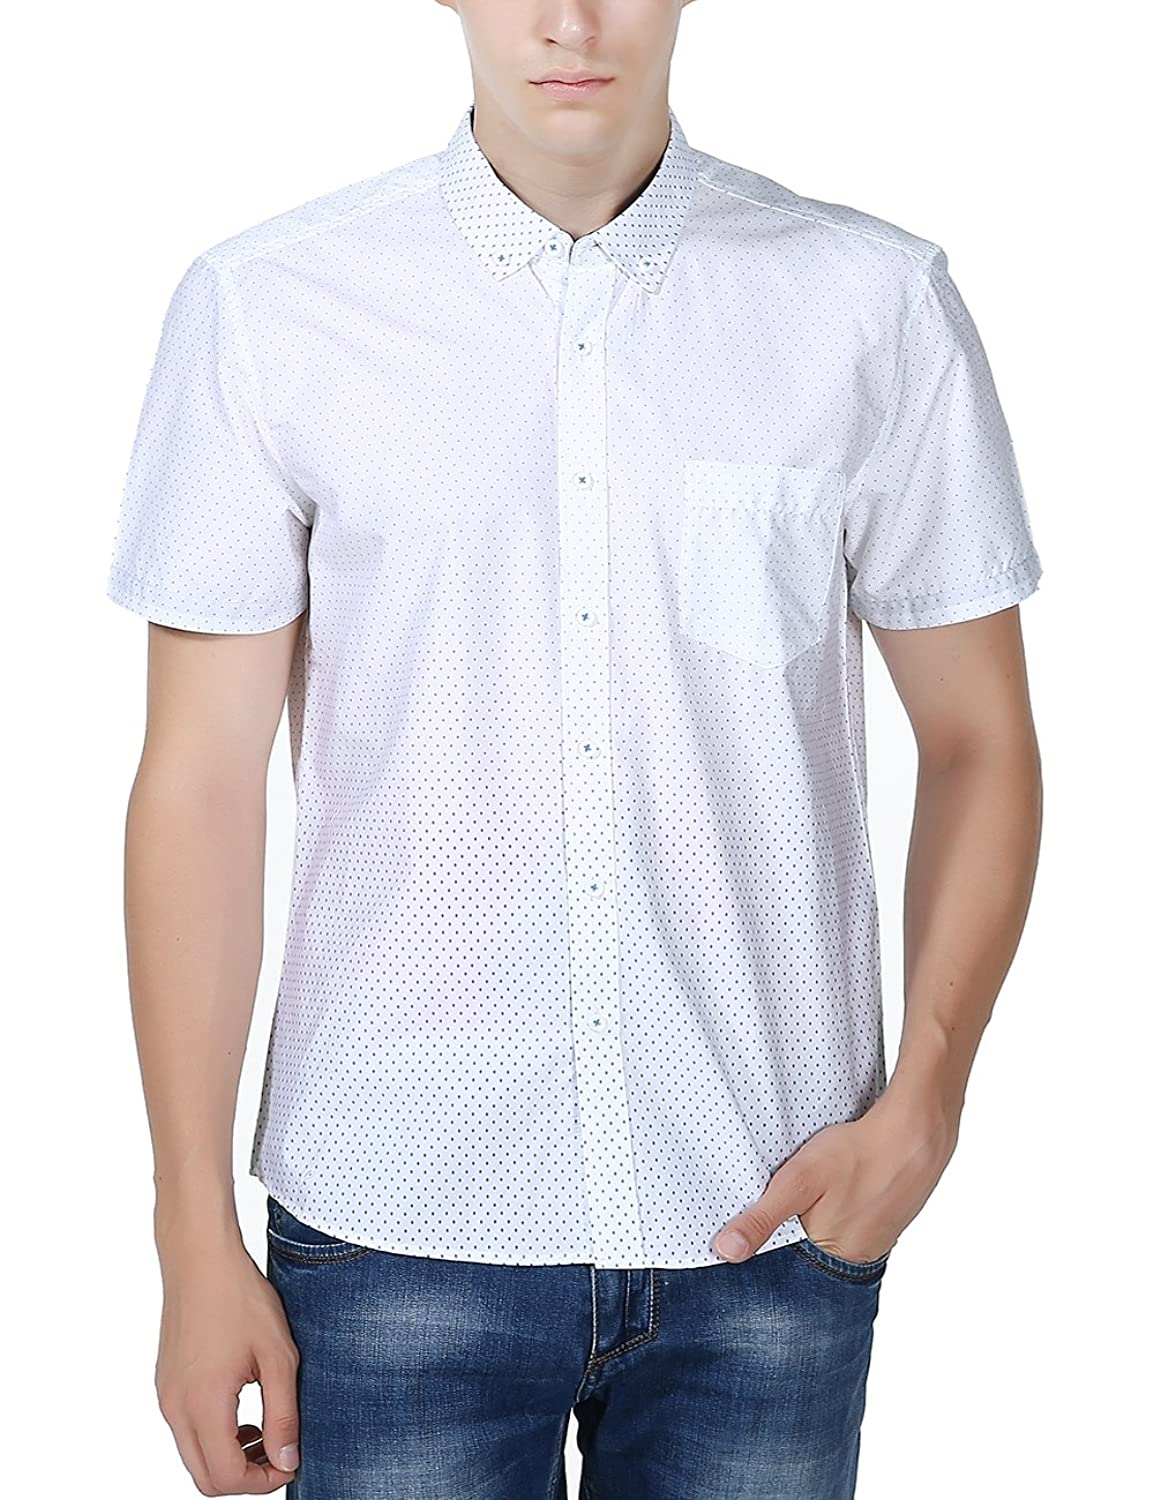 XI PENG Men's Casual Dress Cotton Polka Dots Short Sleeve Fitted ...